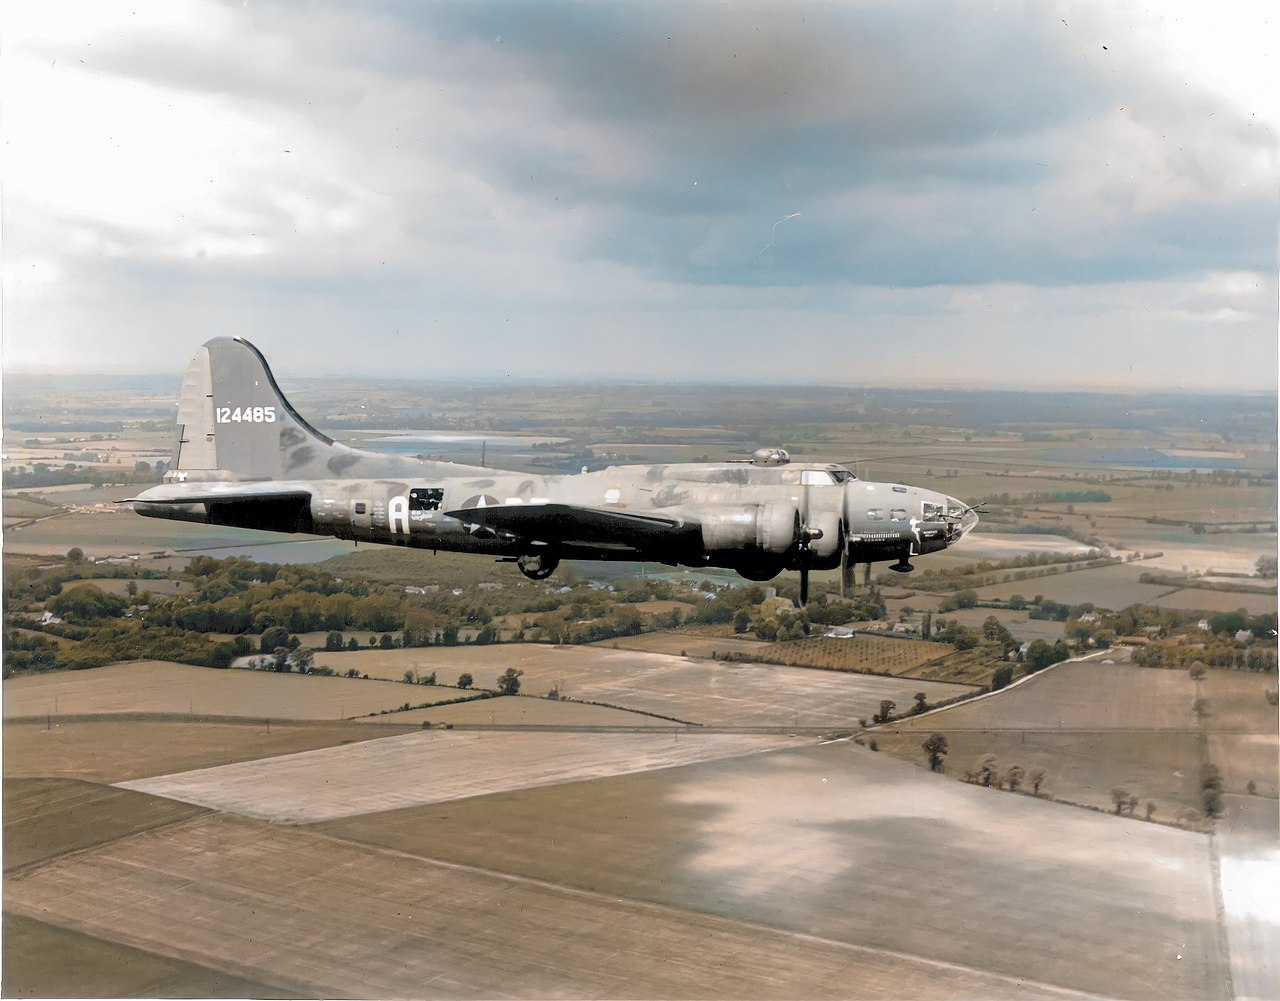 """Did you know the """"Memphis Belle"""" was almost called """"Little One""""? The story of how B-17 Army 41-24485 got her legendary name"""